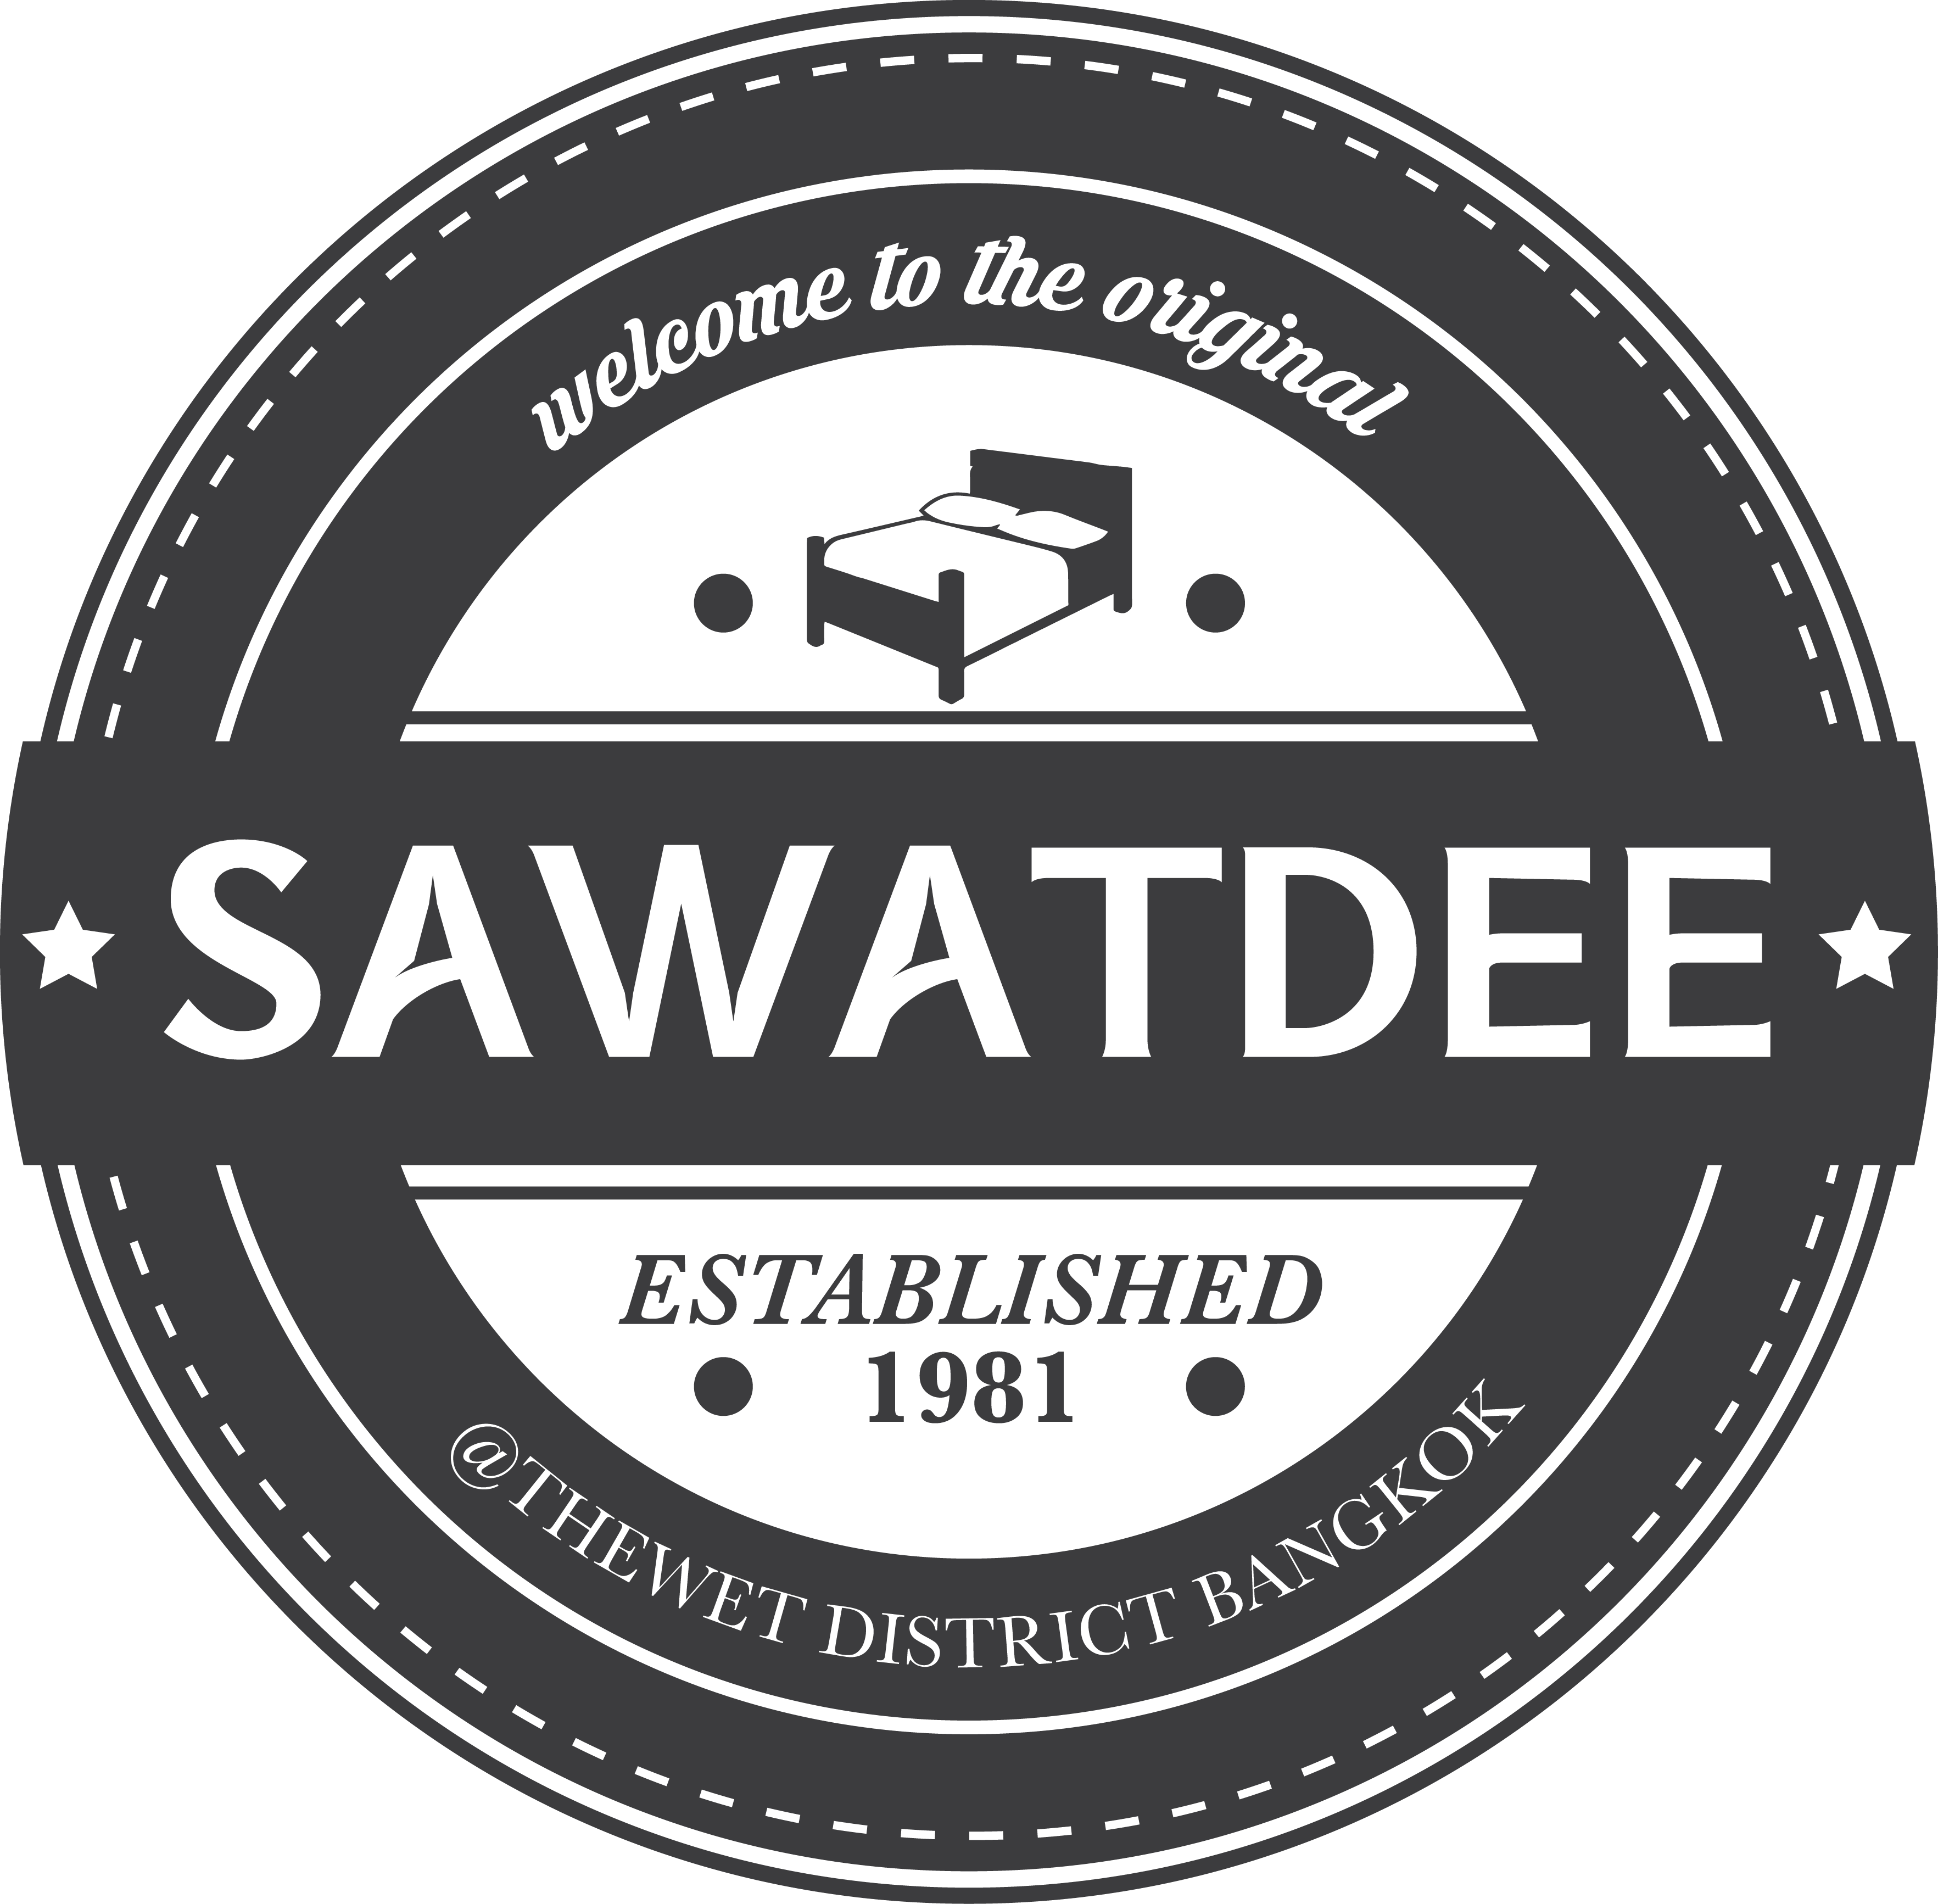 Sawatdee Guesthouse the Original